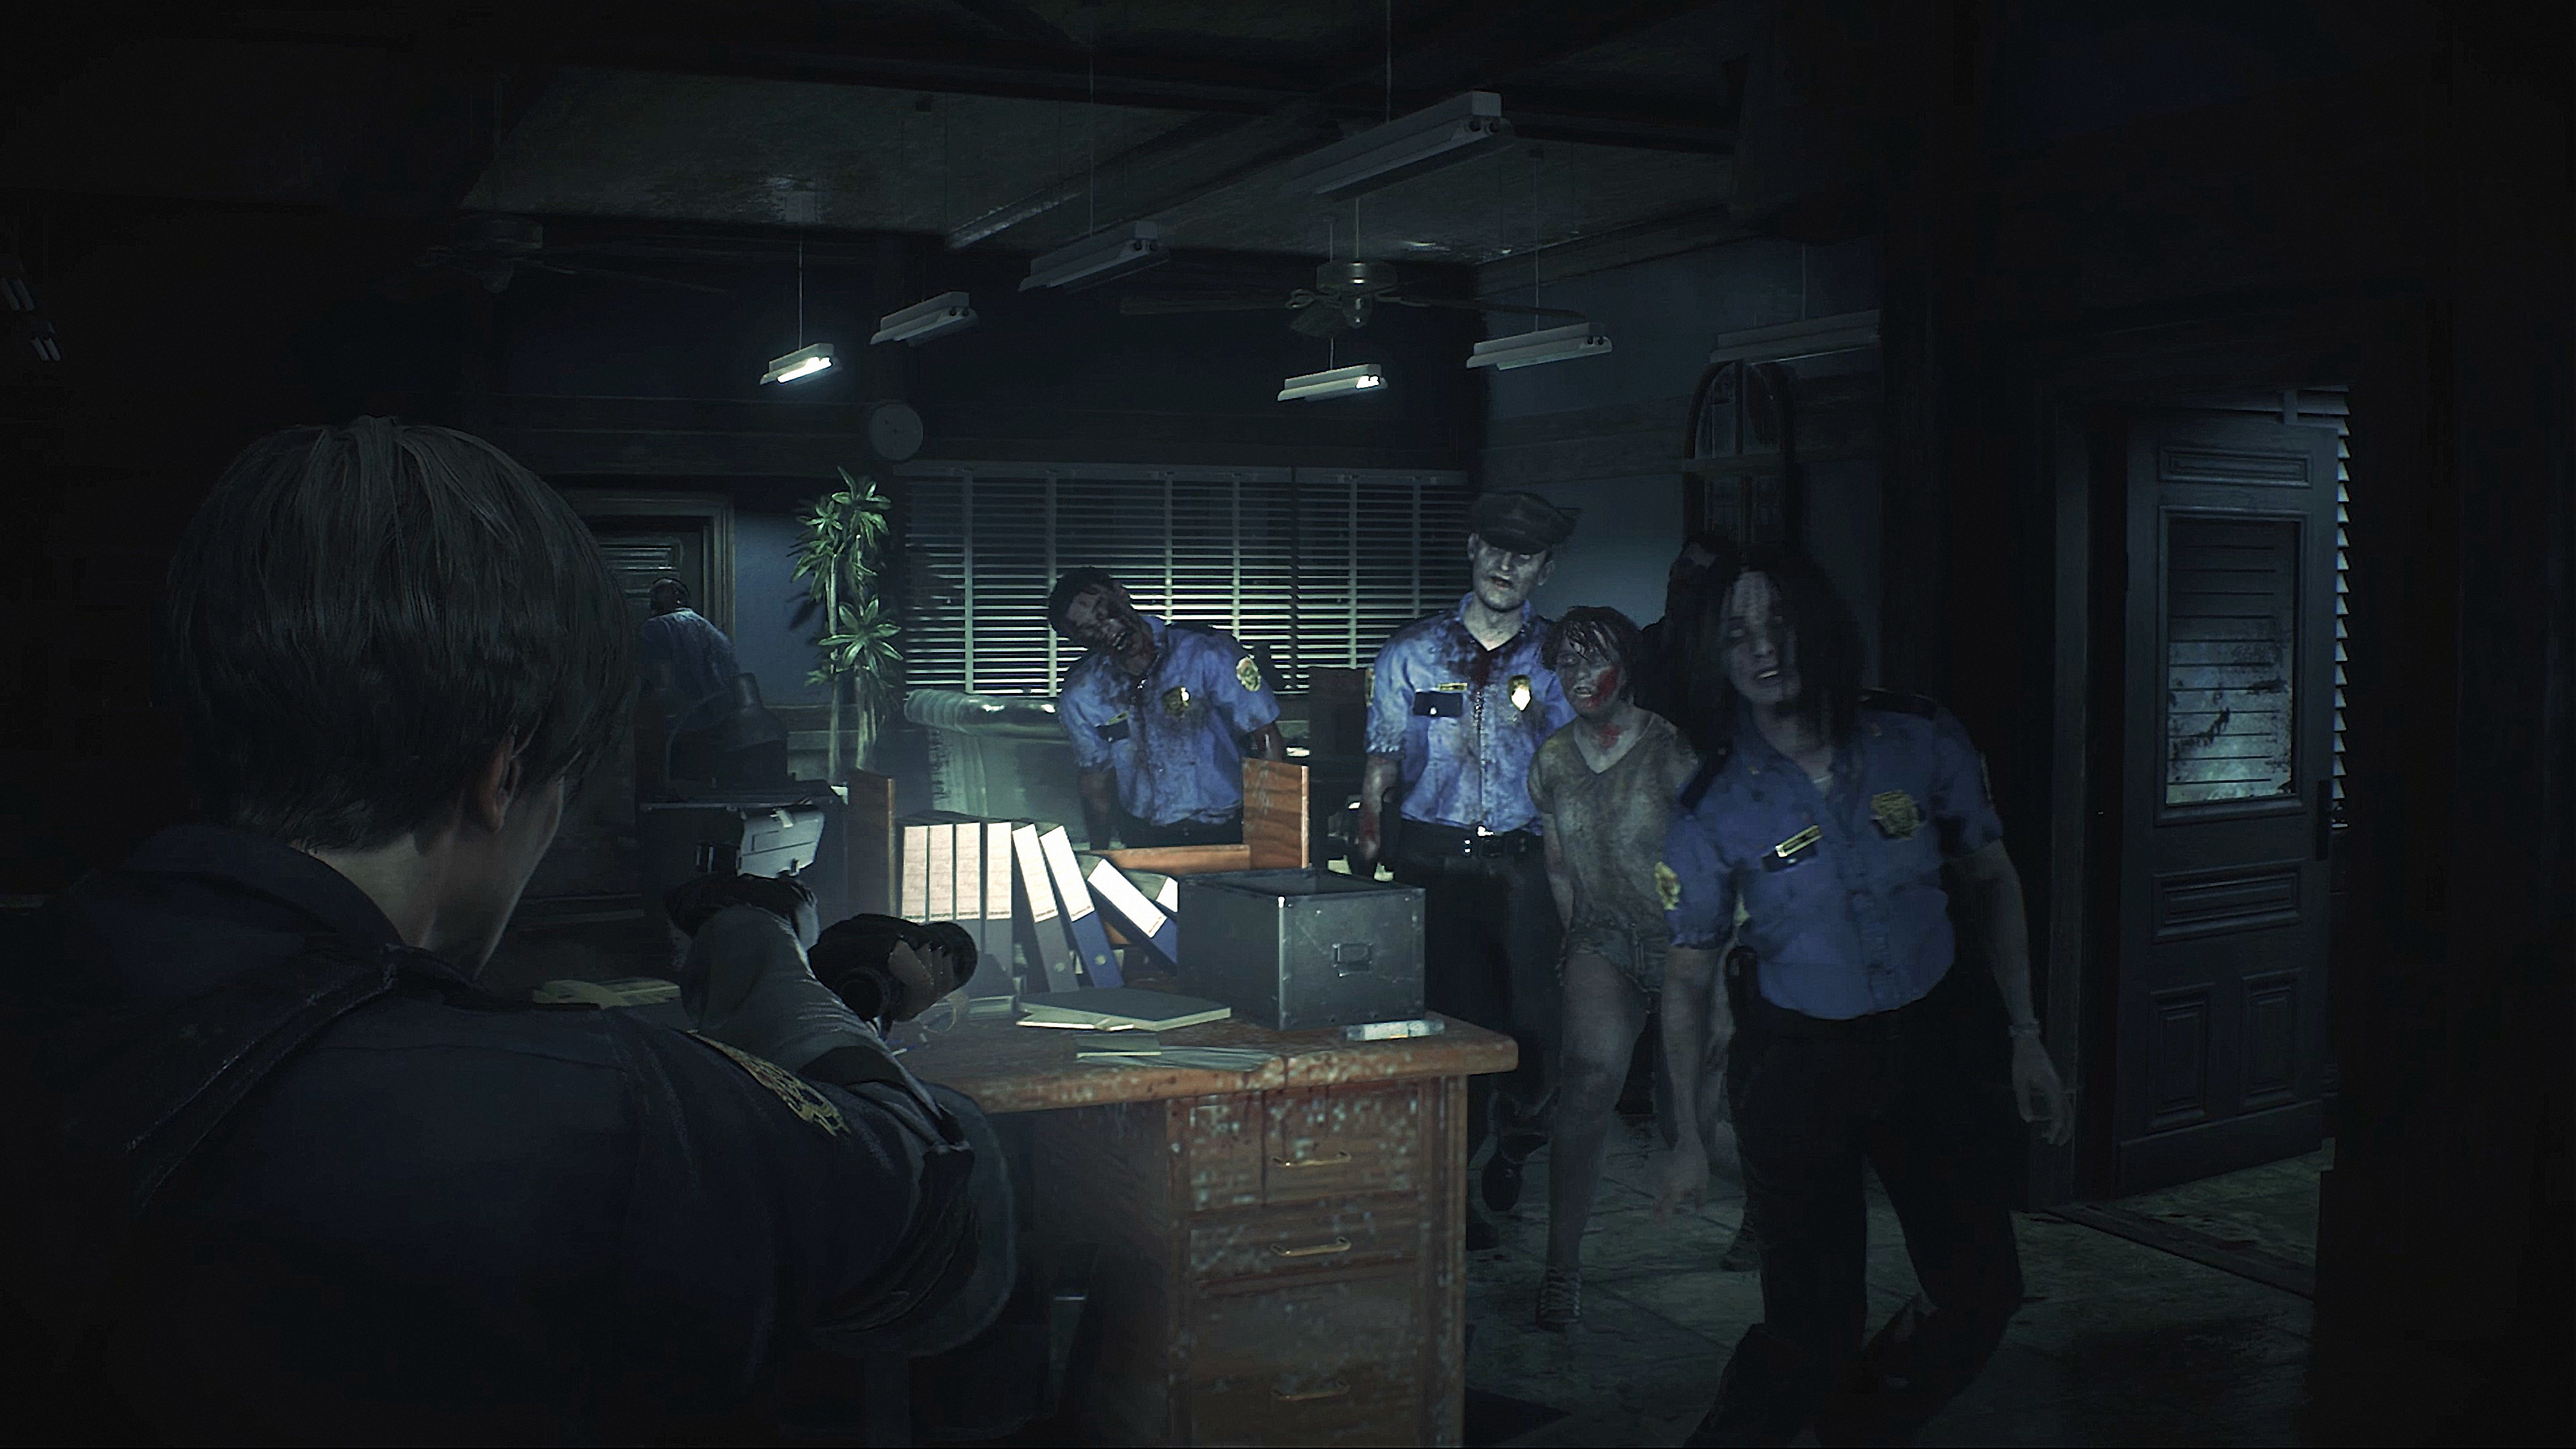 Resident Evil 2 Game Features Screenshot 2 - Shooting Zombies